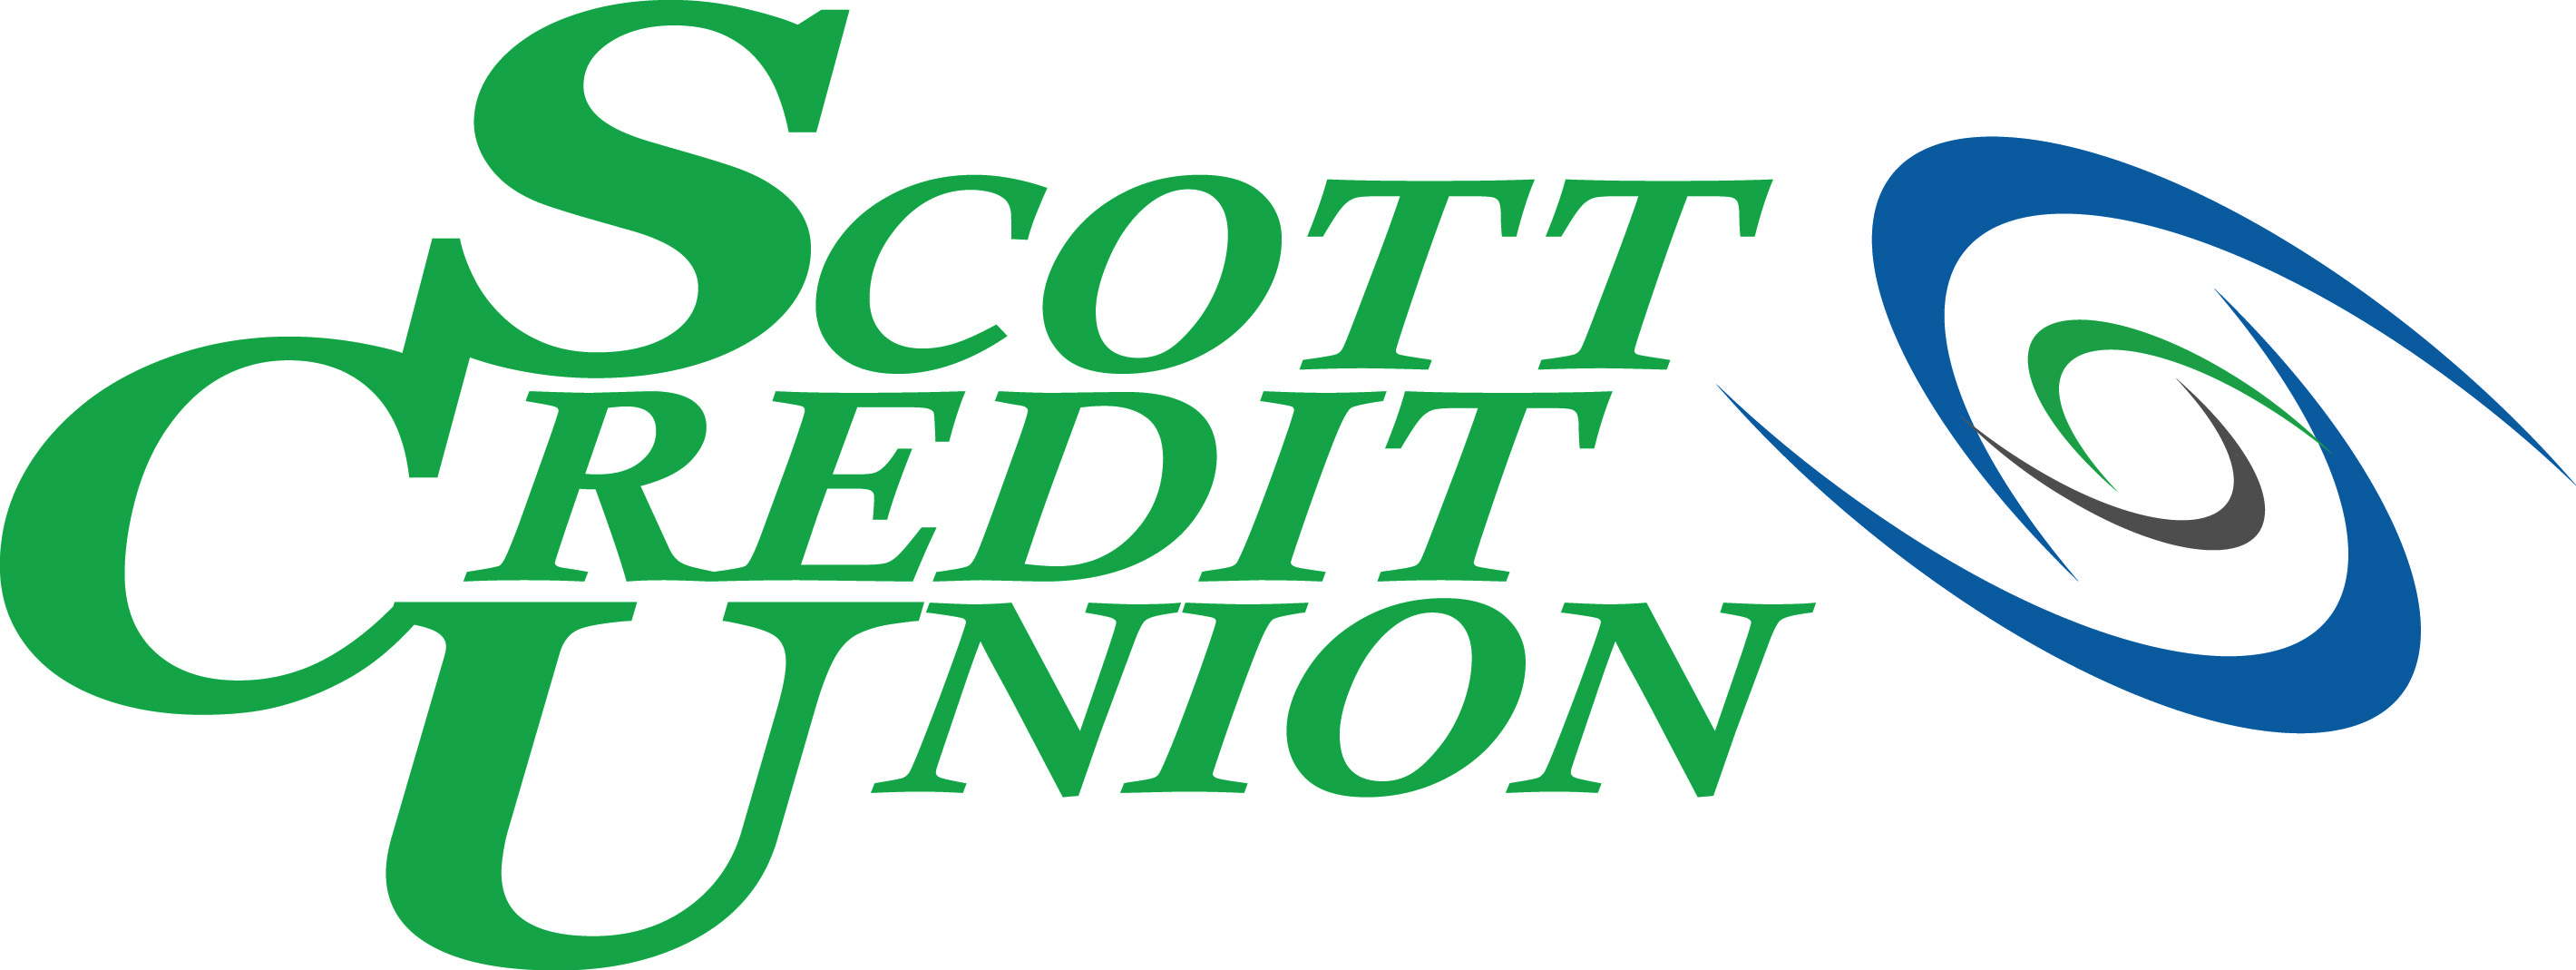 Scott Credit Union